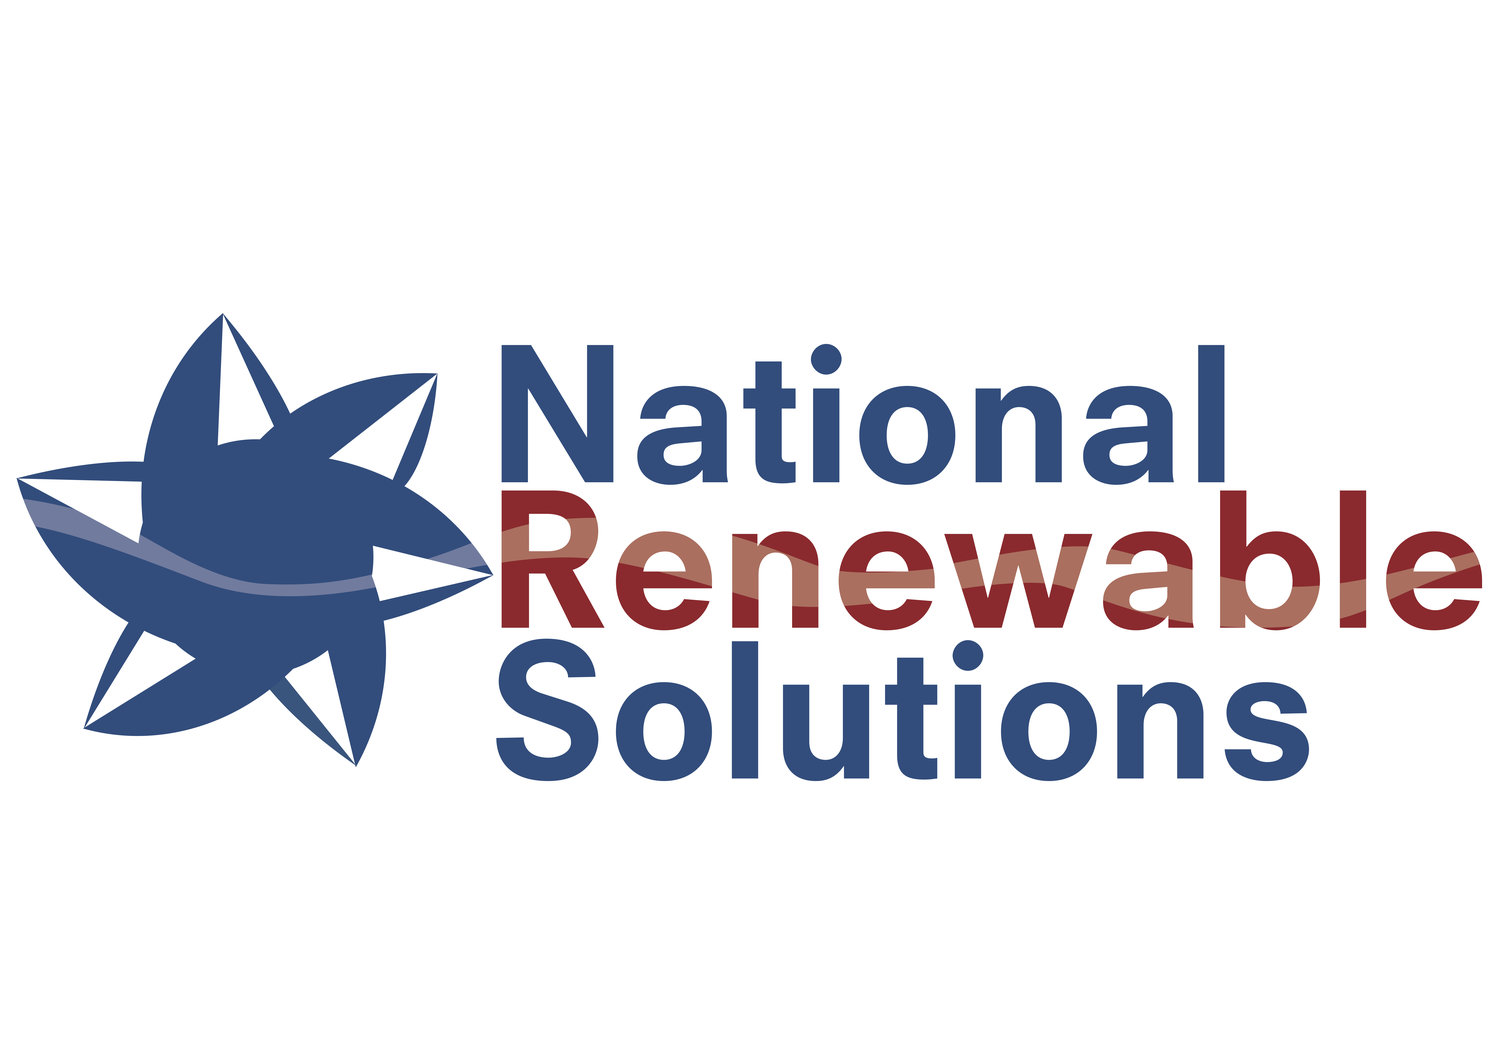 National Renewable Solutions